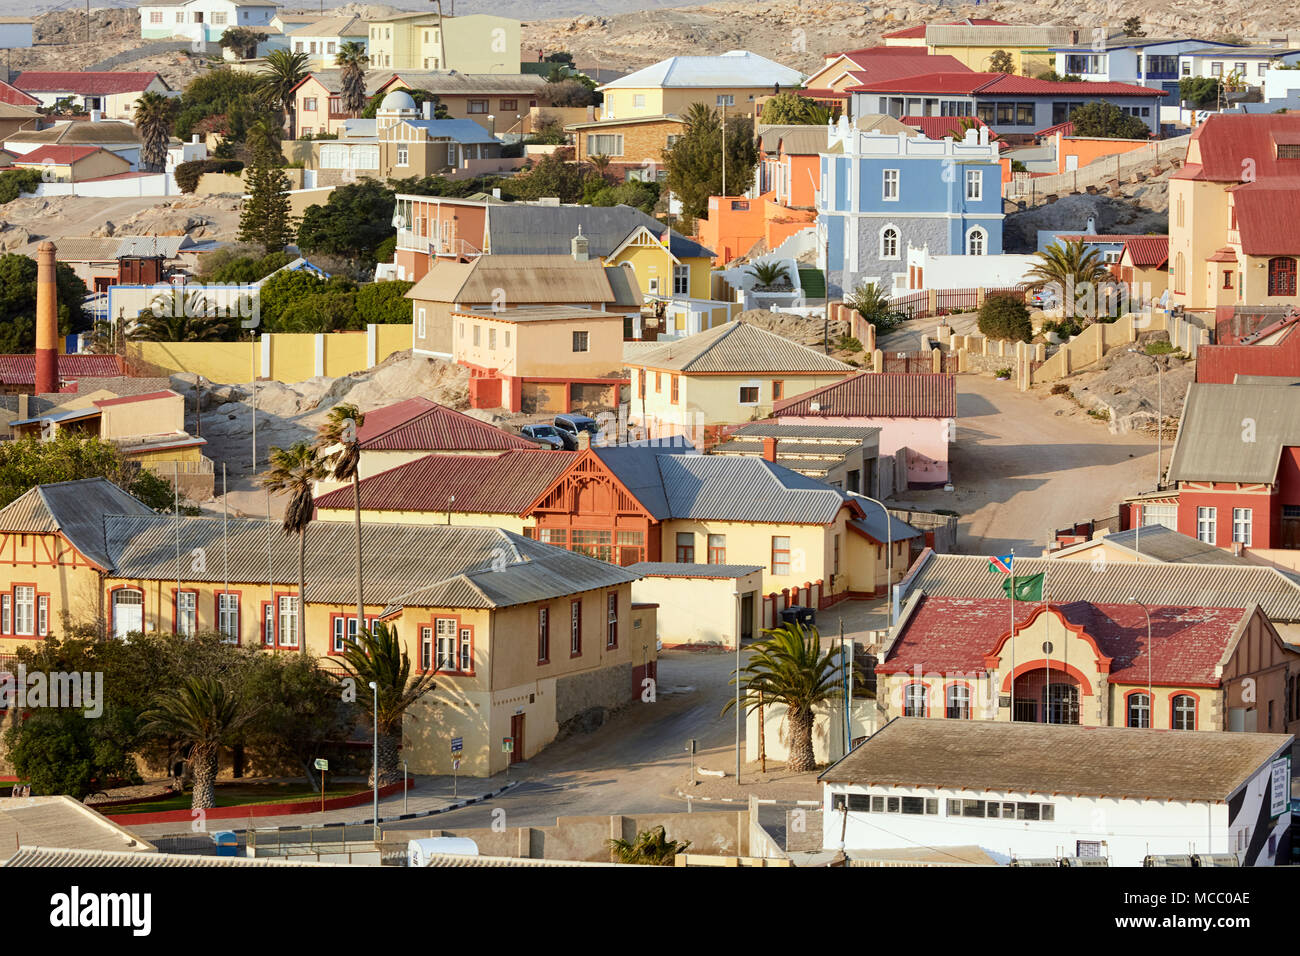 Aerial view of Luderitz showing colorful houses in Namibia, Africa - Stock Image